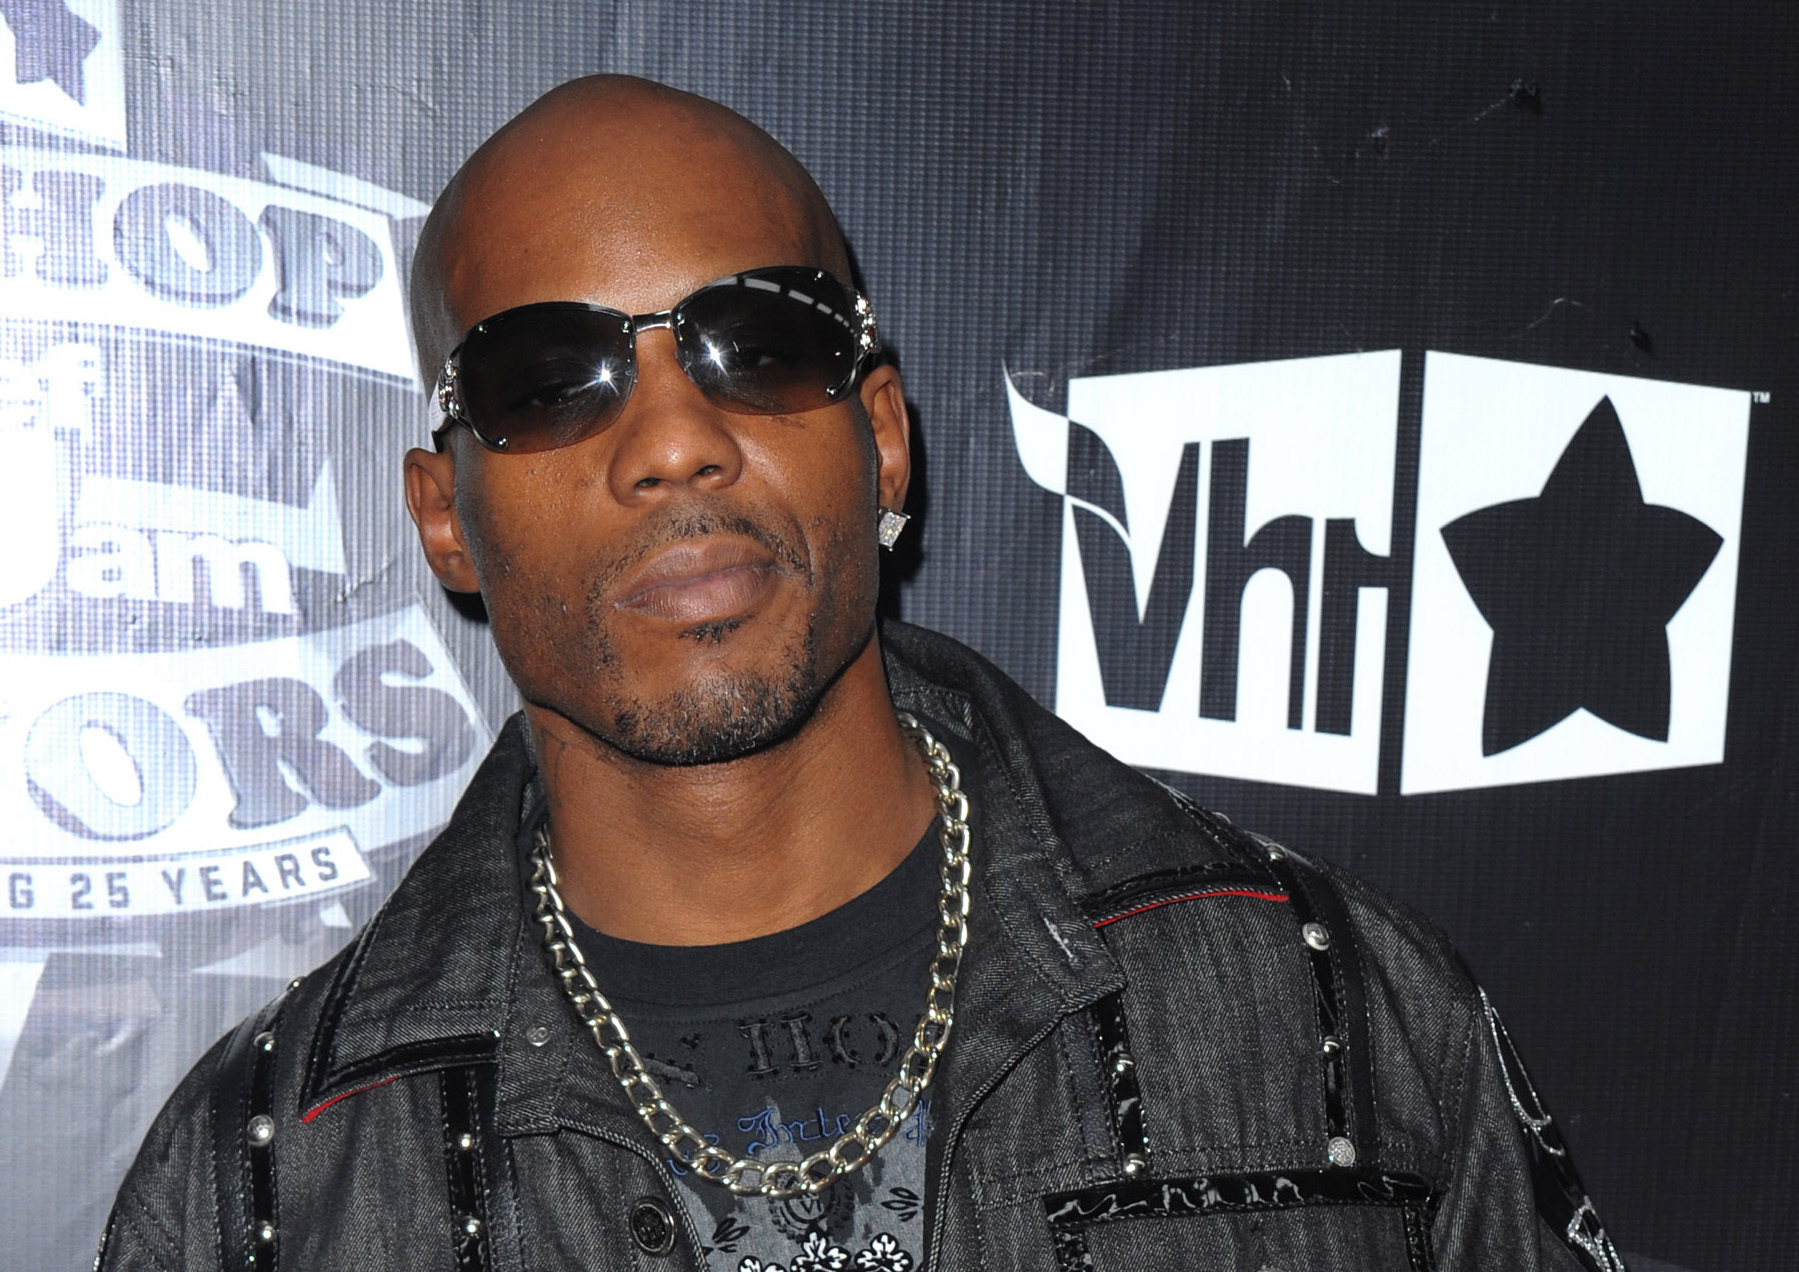 """In this Sept. 23, 2009, file photo, DMX arrives at the 2009 VH1 Hip Hop Honors at the Brooklyn Academy of Music, in New York. DMX's longtime New York-based lawyer, Murray Richman, said the rapper was on life support Saturday, April 3, 2021 at White Plains Hospital. """"He had a heart attack. He's quite ill,"""" Richman said. (AP Photo/Peter Kramer, File)"""